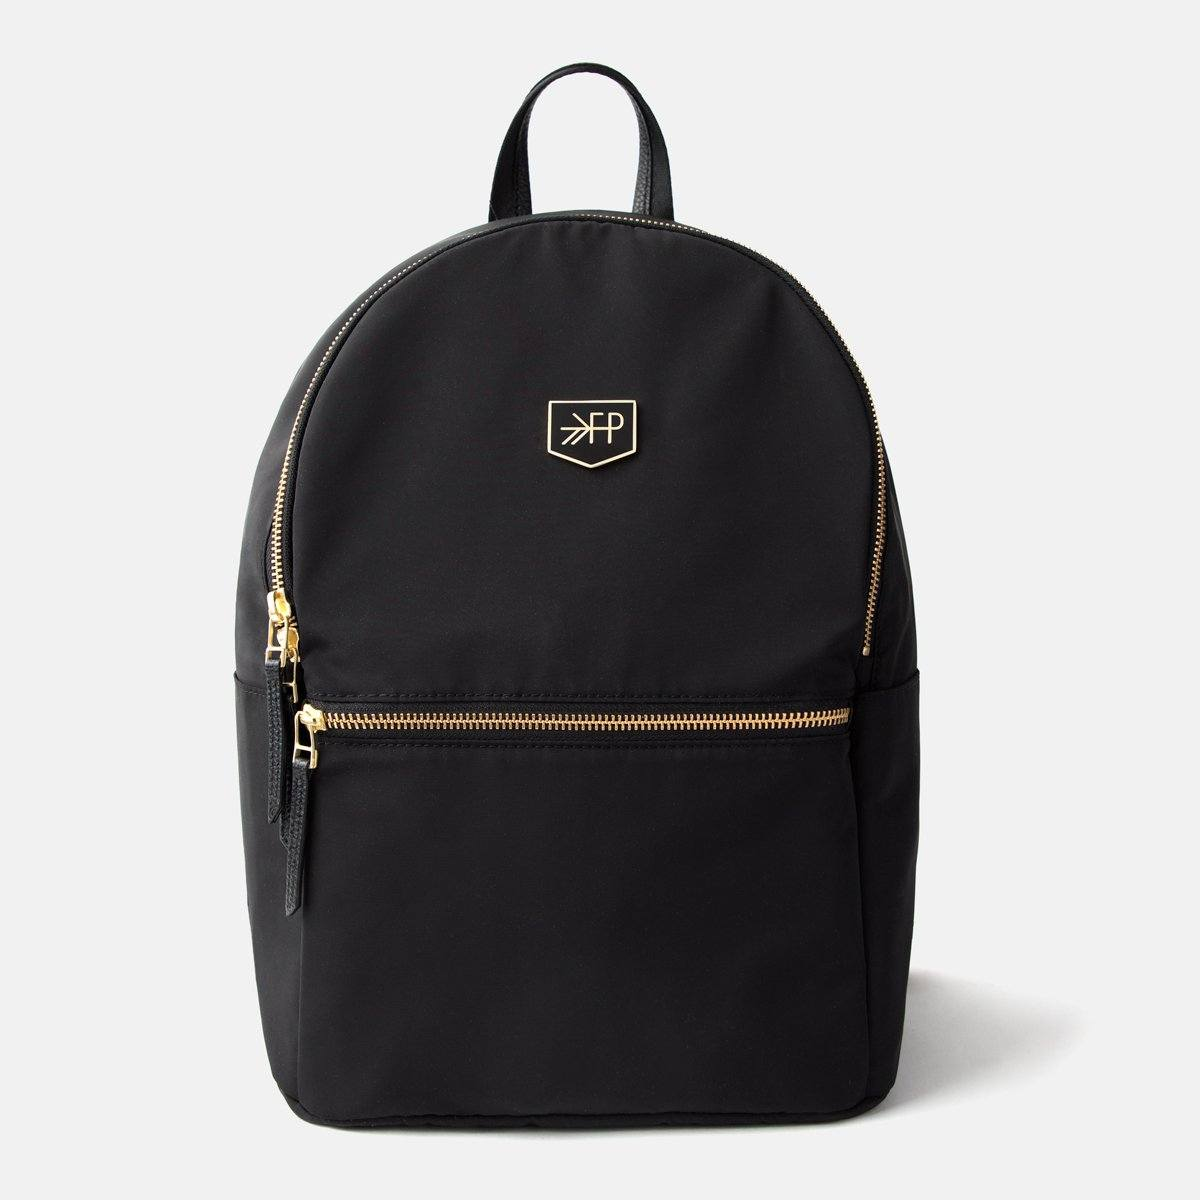 Ebony City Pack City Pack Bags